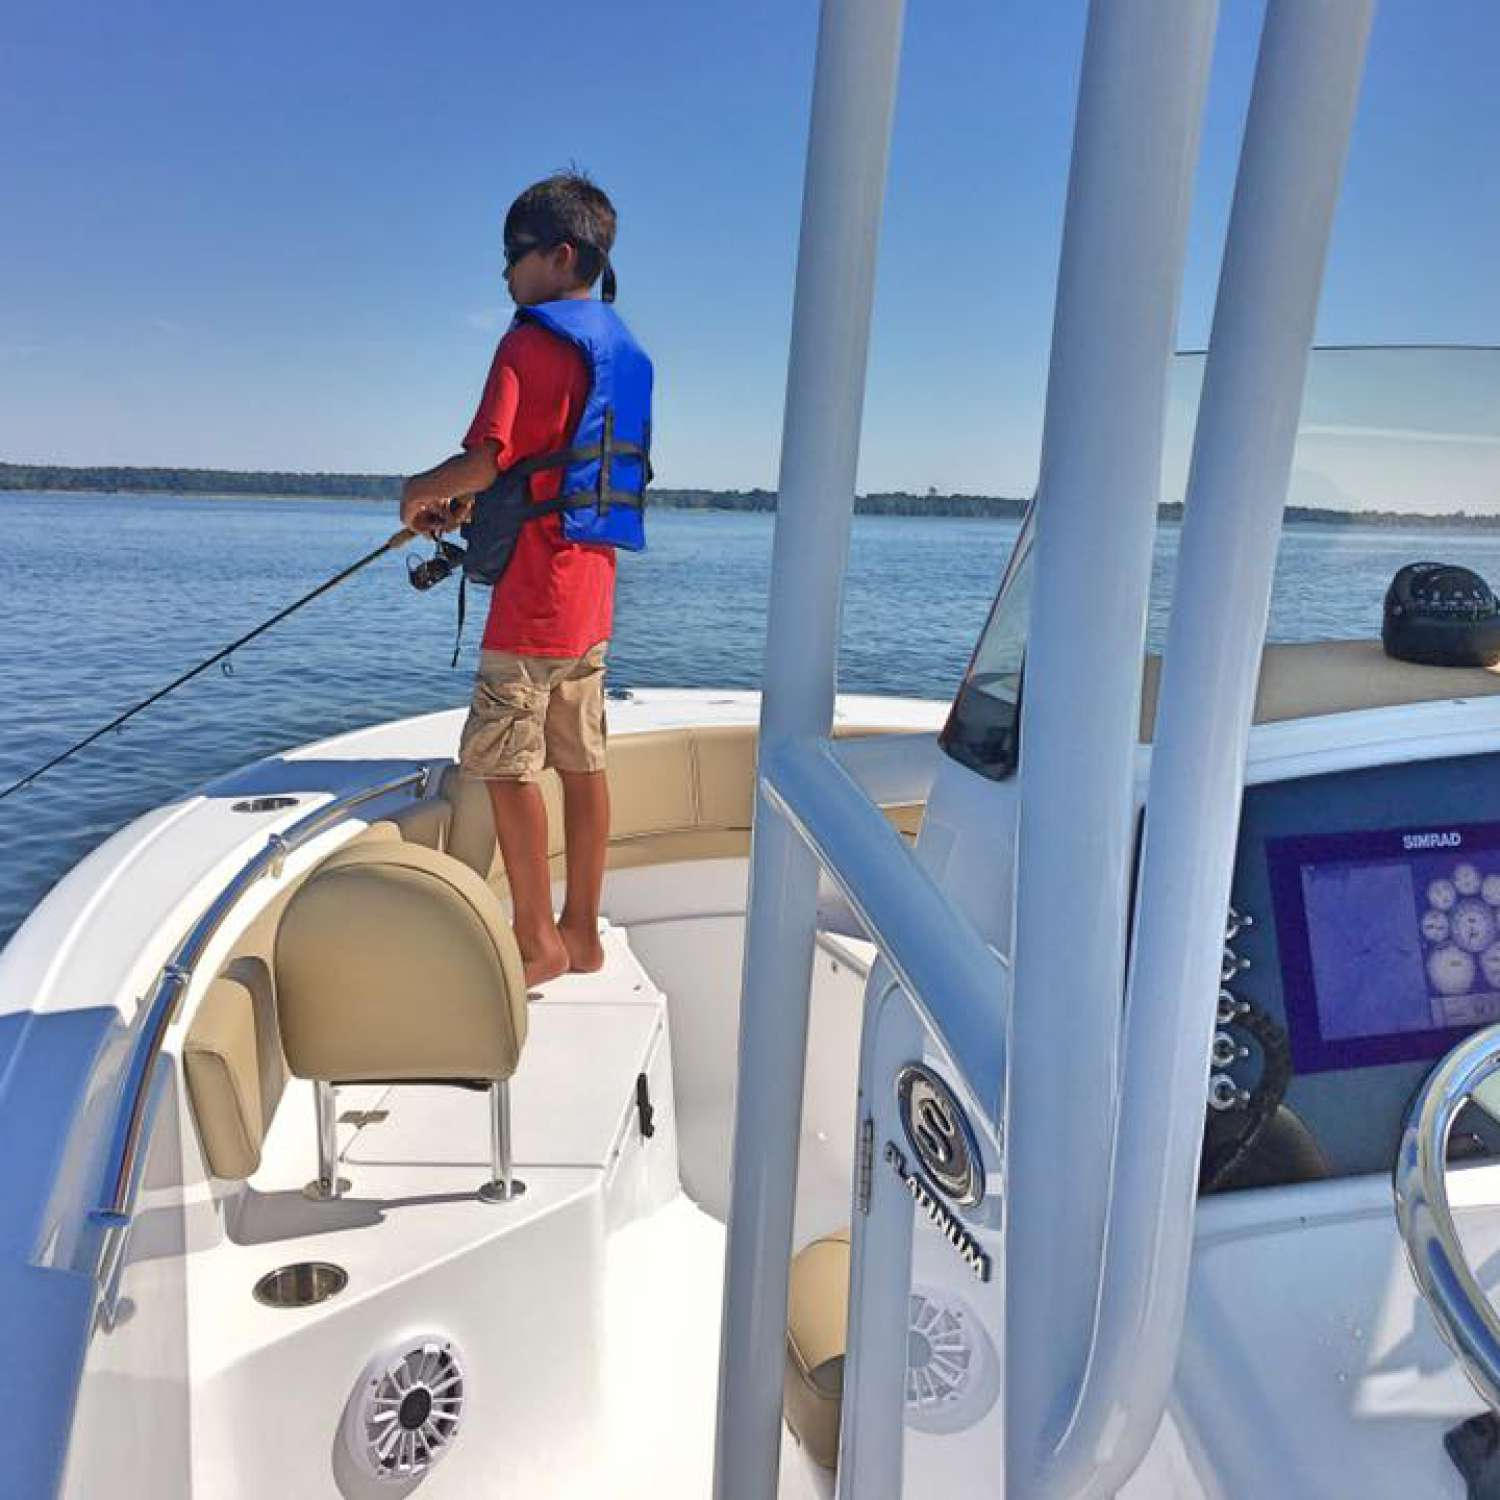 Title: Jigging Away - On board their Sportsman Open 232 Center Console - Location: Chester, Maryland. Participating in the Photo Contest #SportsmanJanuary2017